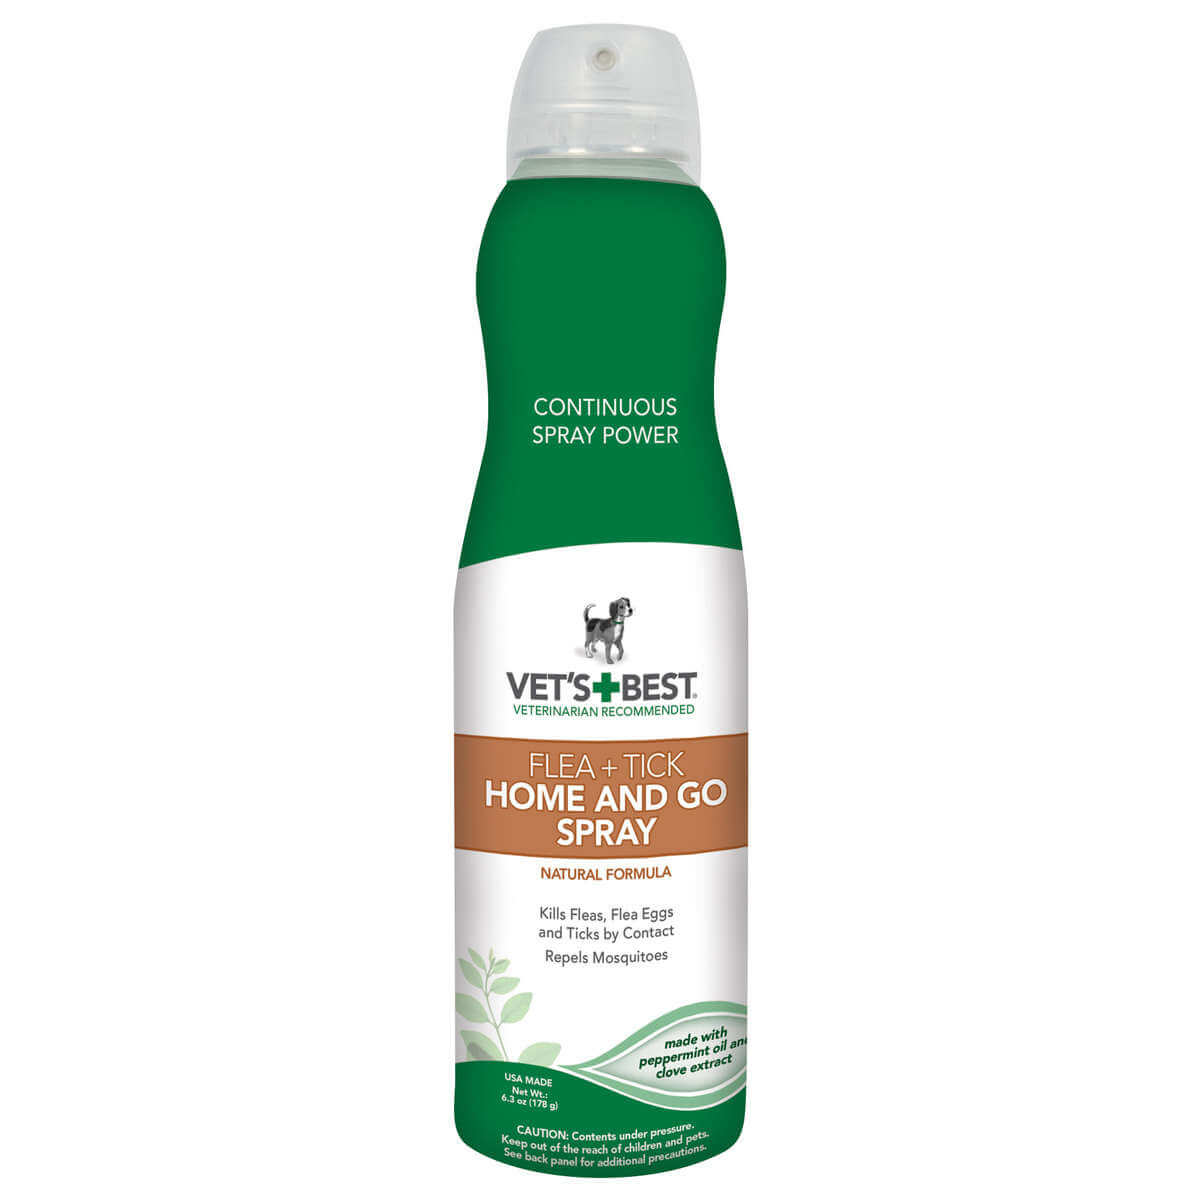 Vet's Best Dog Flea and Tick Home and Go Spray 6.3oz Green 2.09